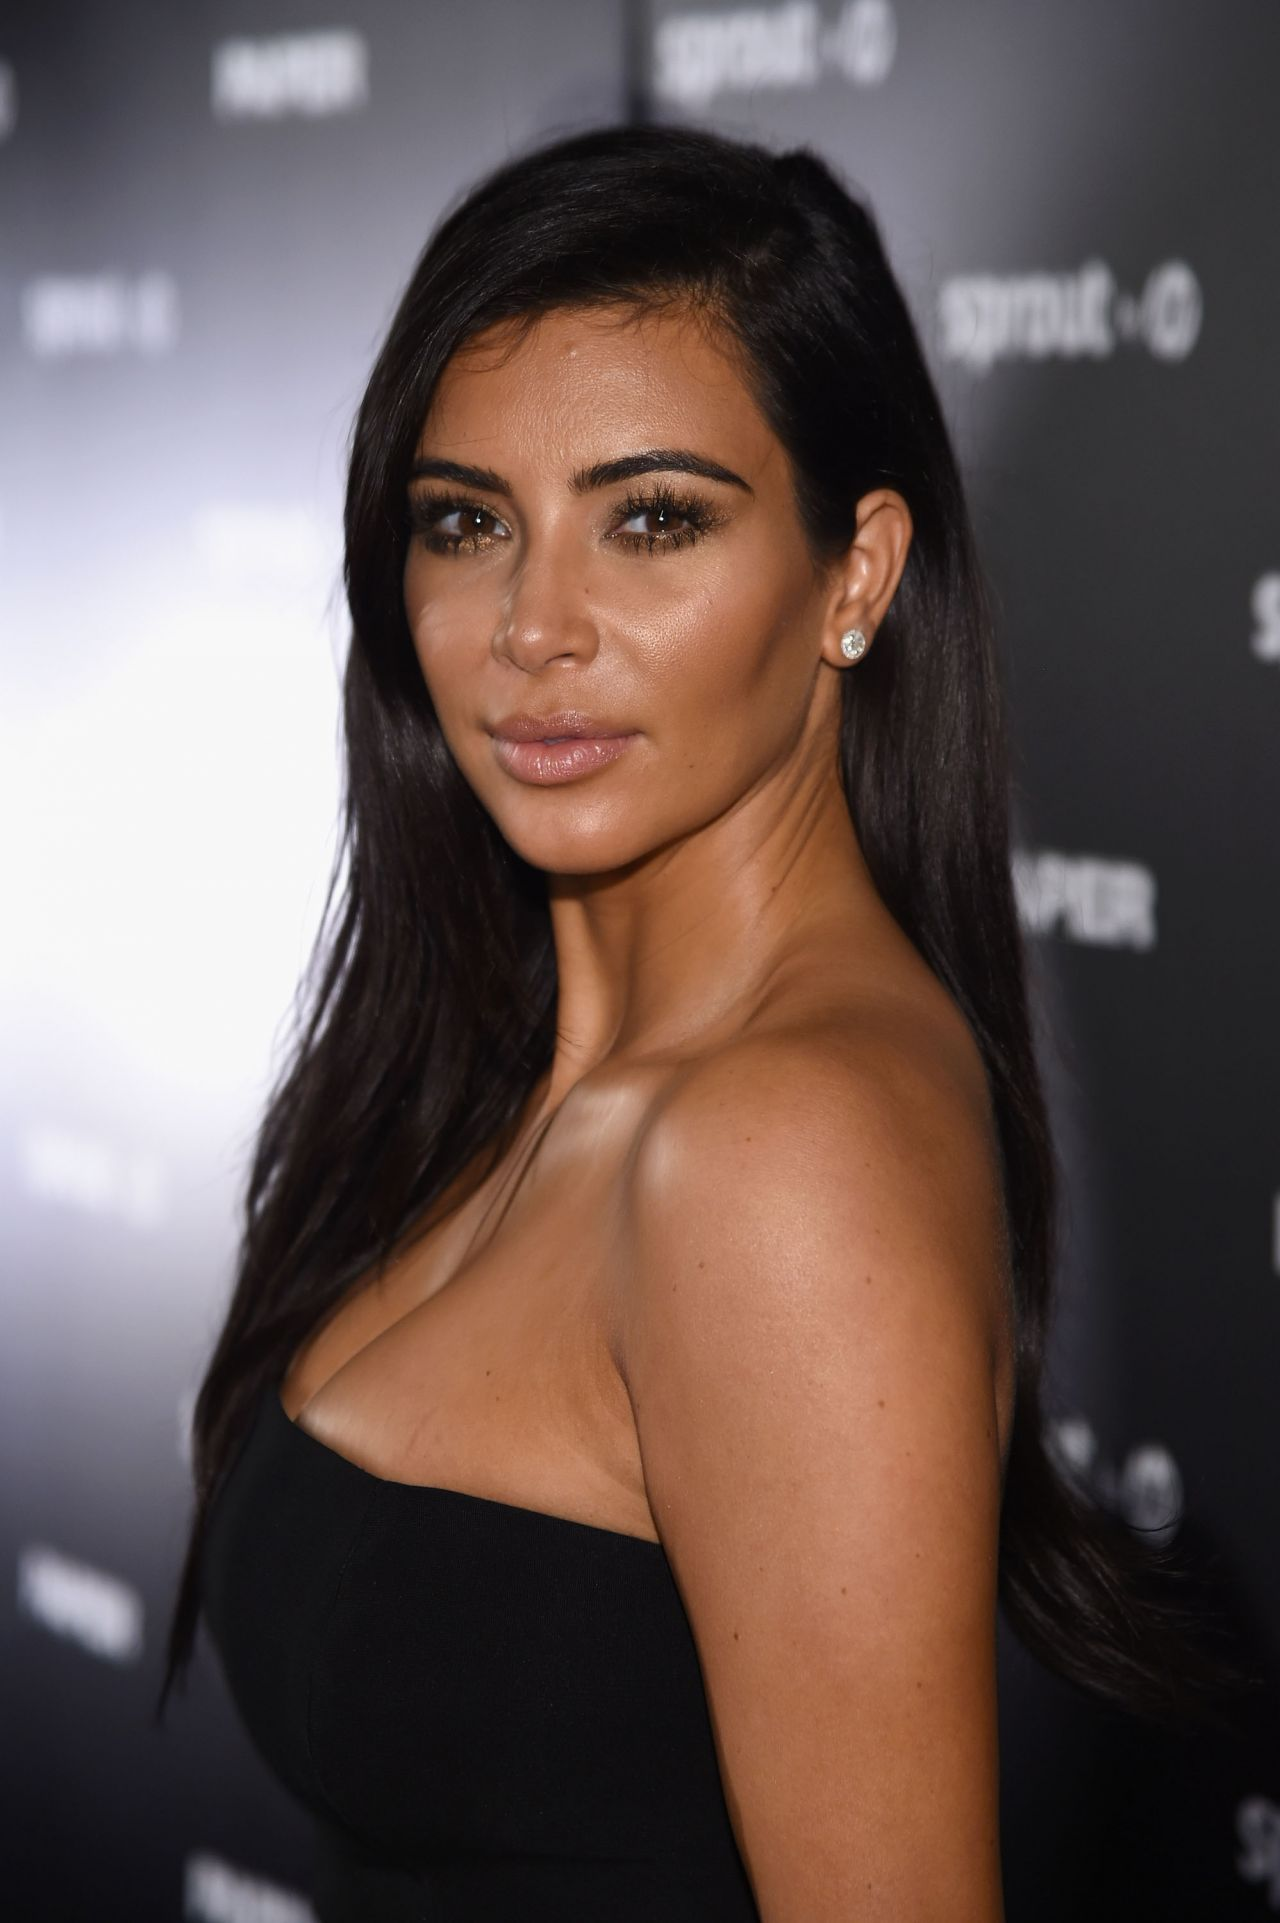 kim kardashian - photo #26